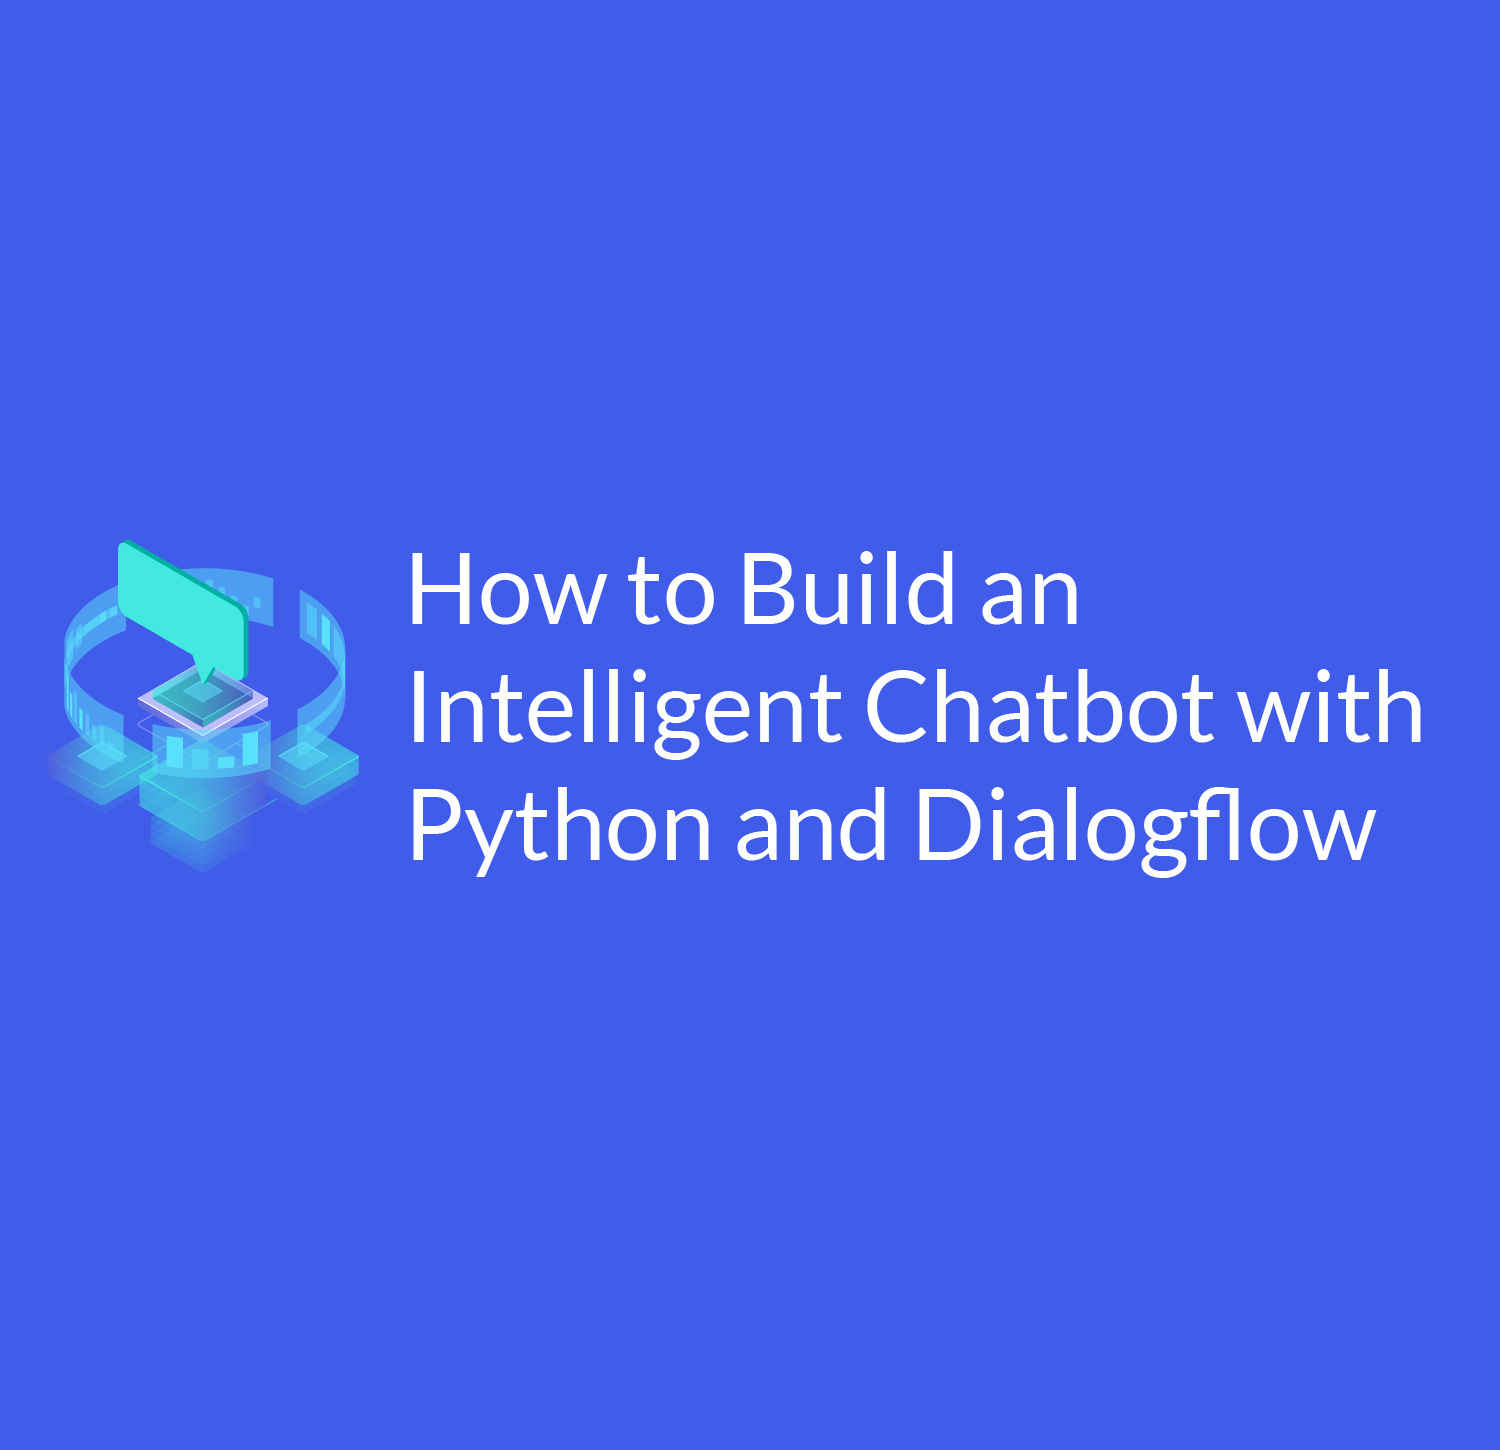 How to build an intelligent chatbot with Python and Dialogflow